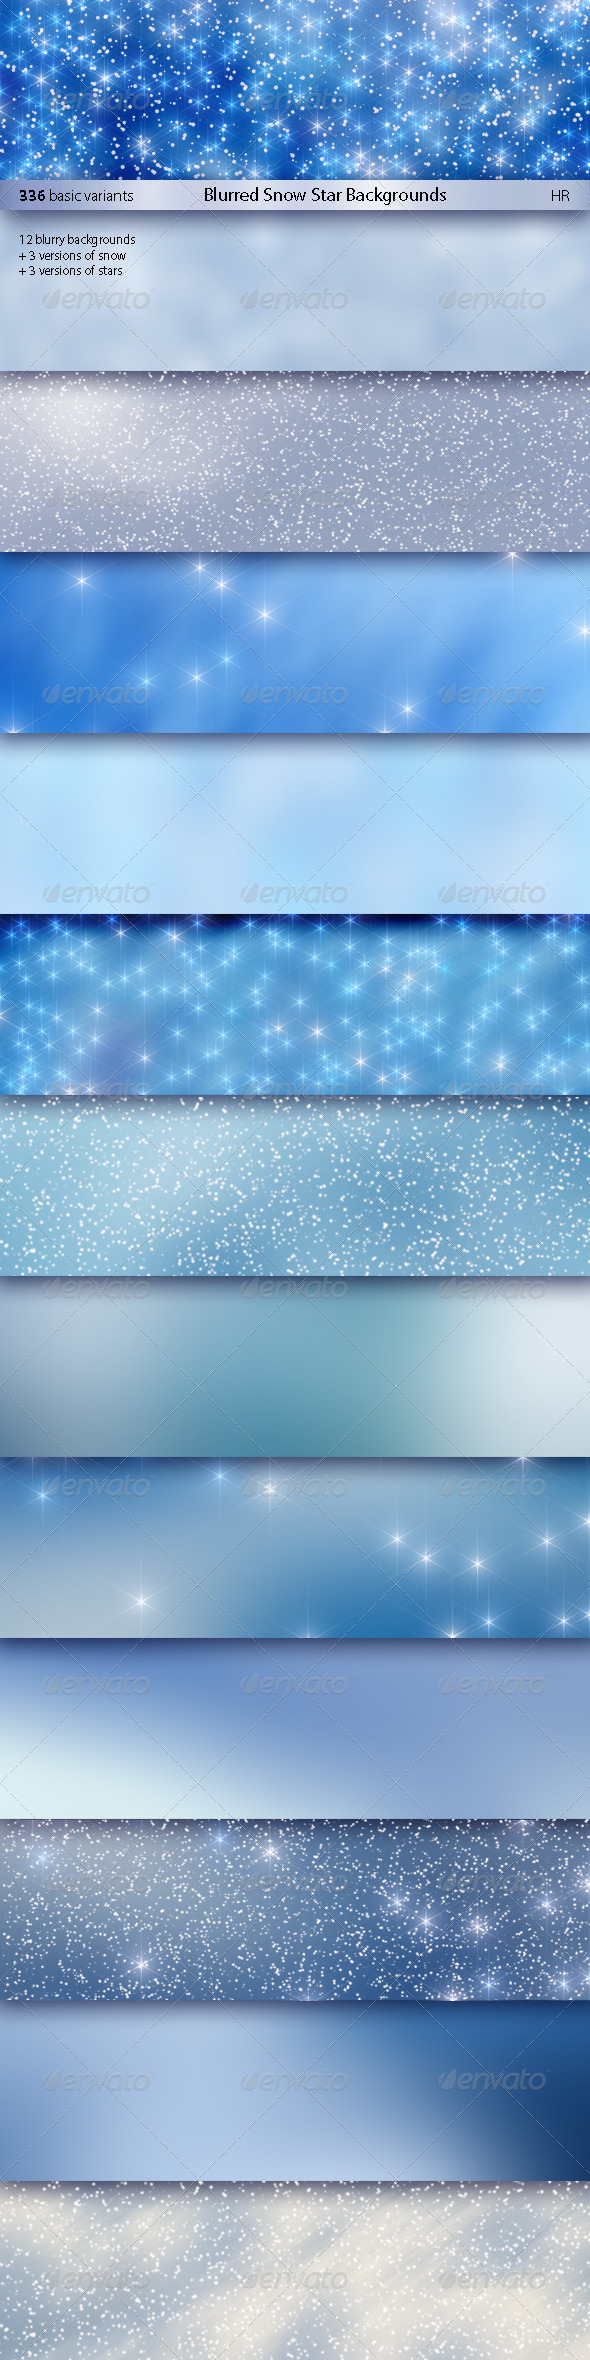 GraphicRiver Blurred Snow Star Backgrounds 5962462